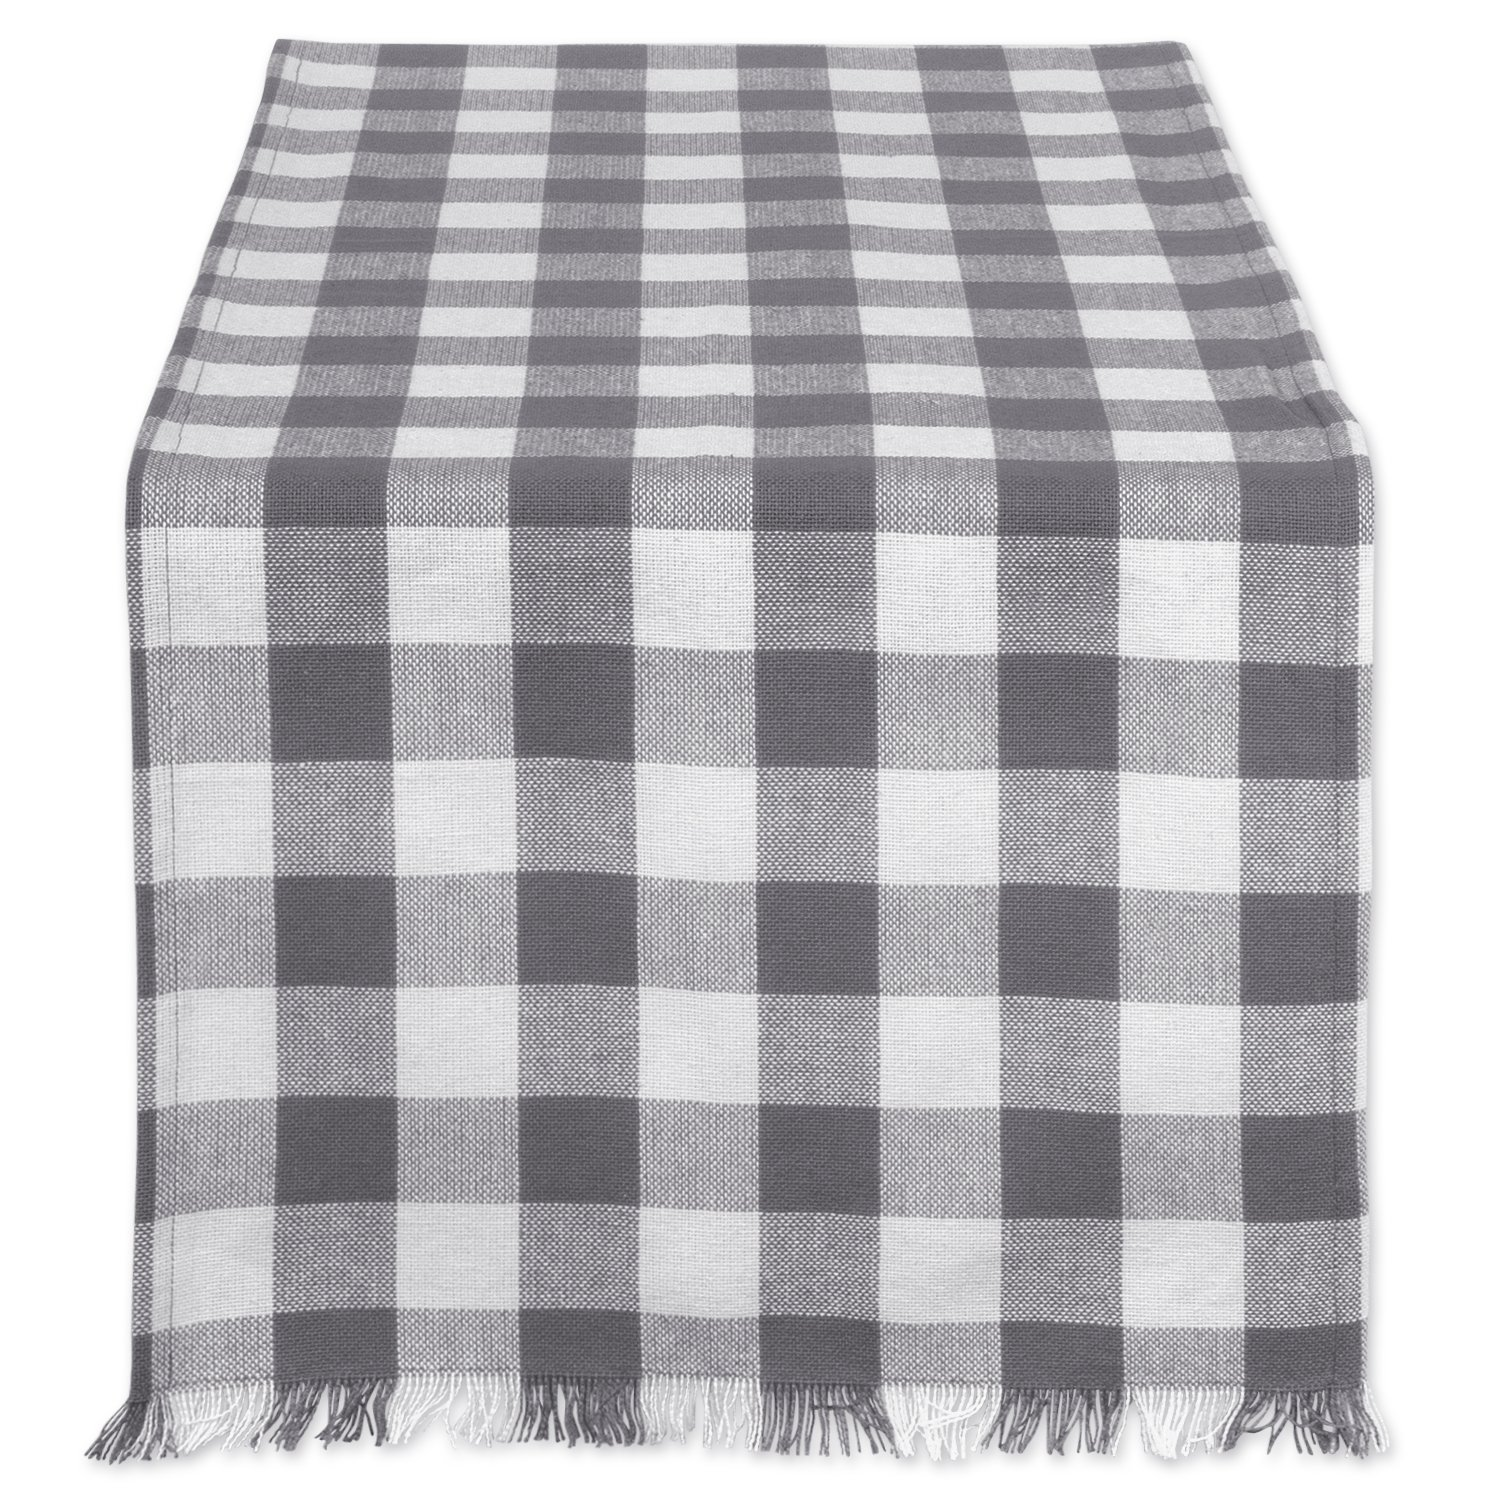 DII Cotton Woven Heavyweight Table Runner with Decorative Fringe for Spring, Summer, Family Dinners, Outdoor Parties, & Everyday Use (14x108'') Gray Check by DII